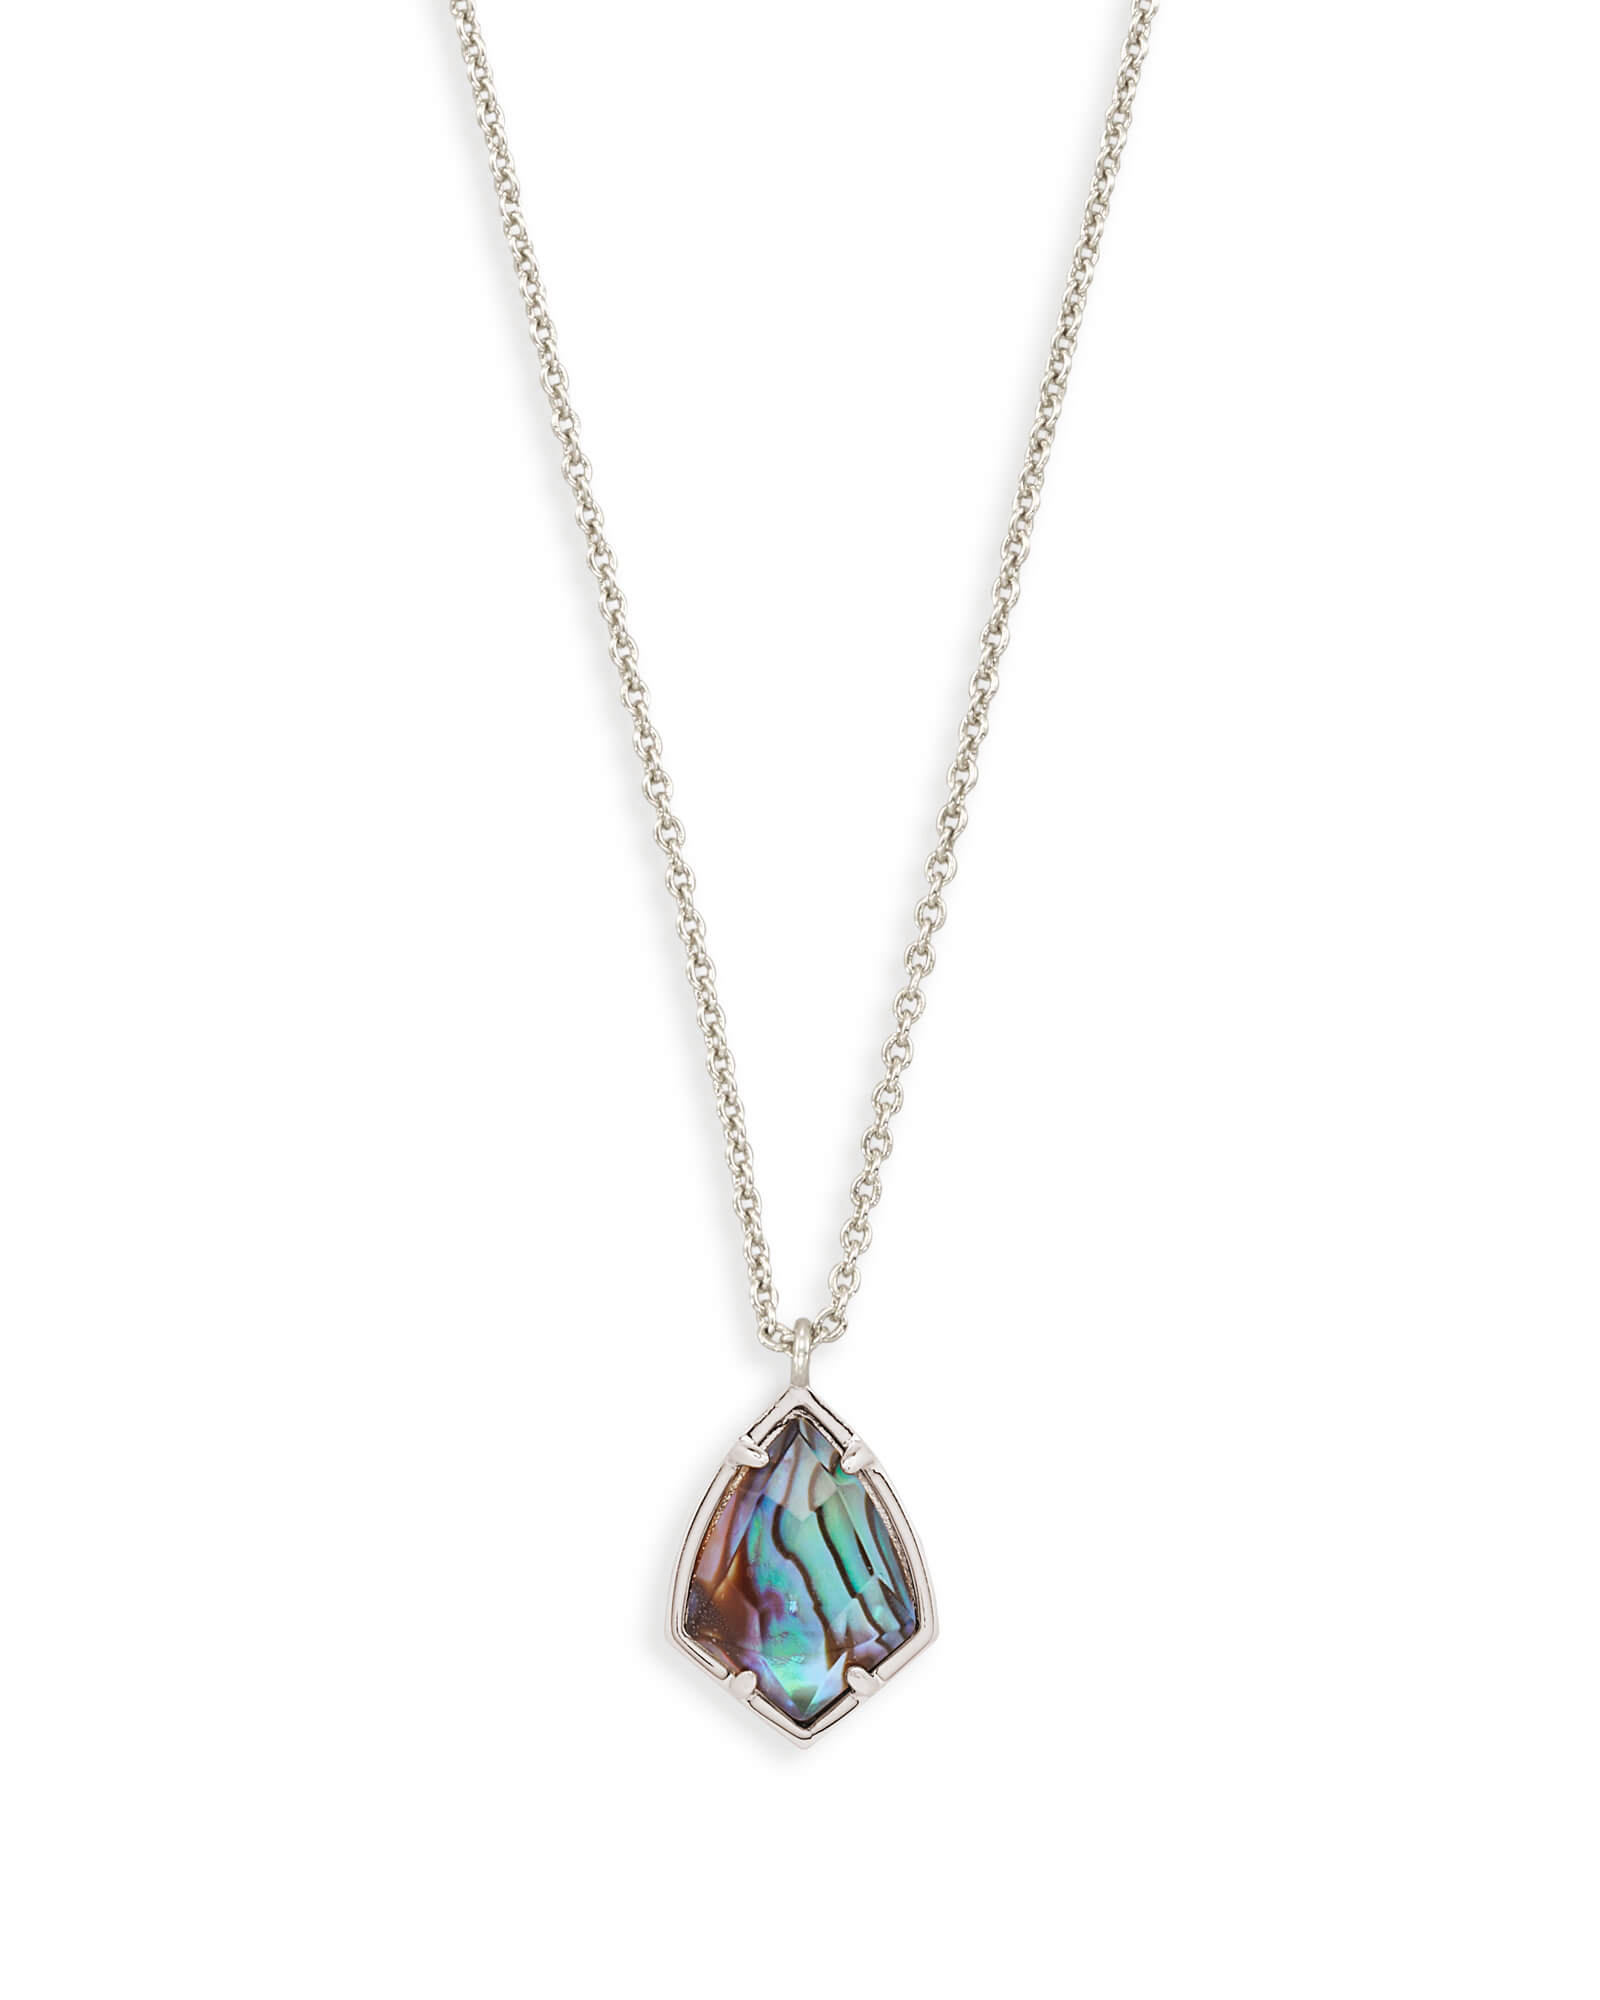 Cory Silver Pendant Necklace in Abalone Shell